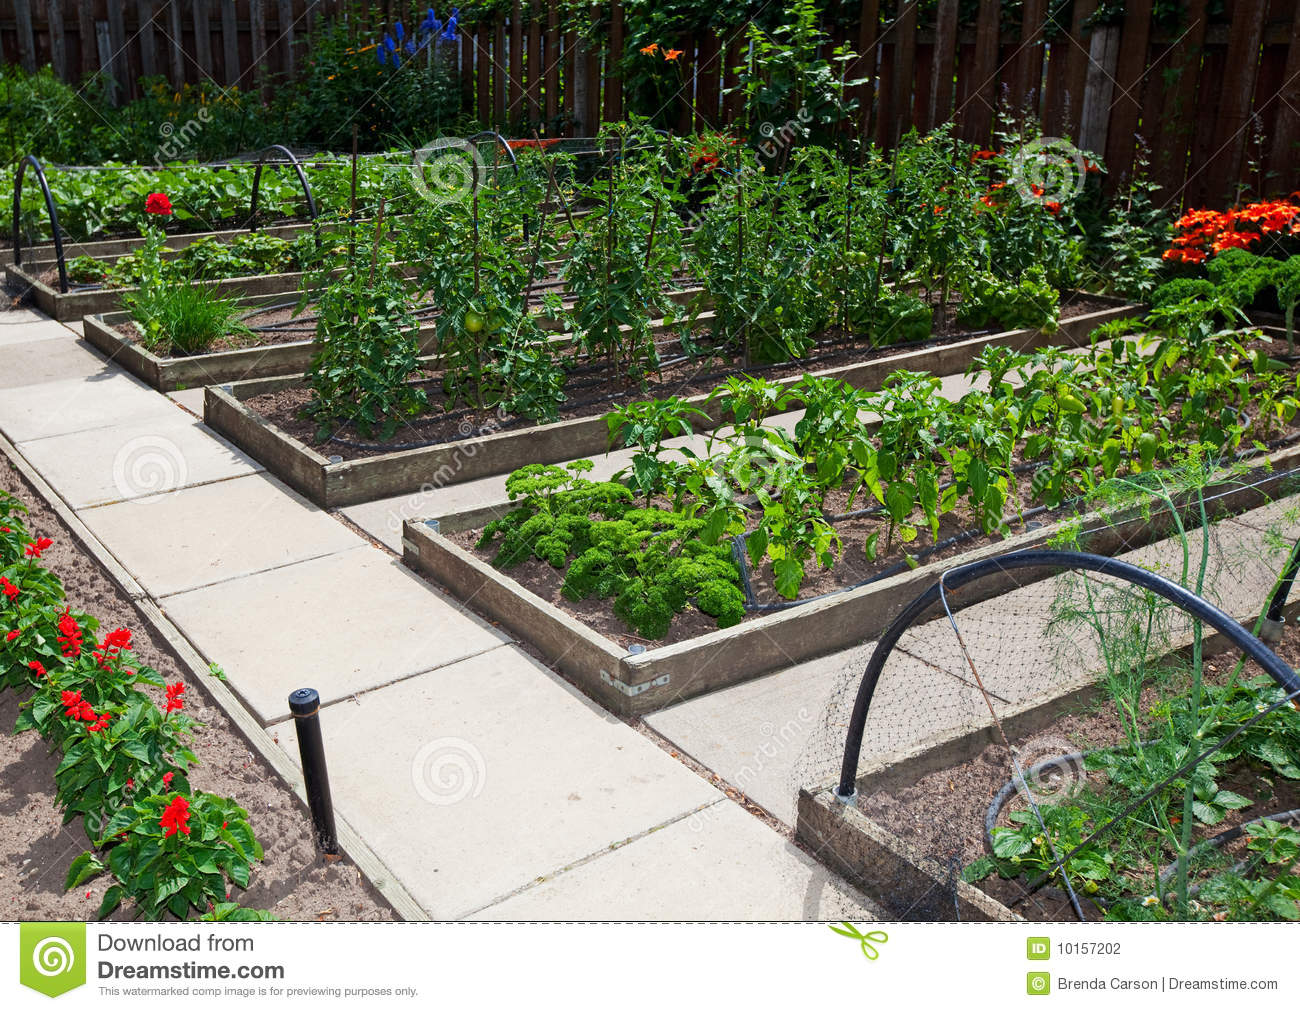 Raised vegetable gardens - Raised Vegetable Garden Raised Vegetable Garden Beds Stock Photography